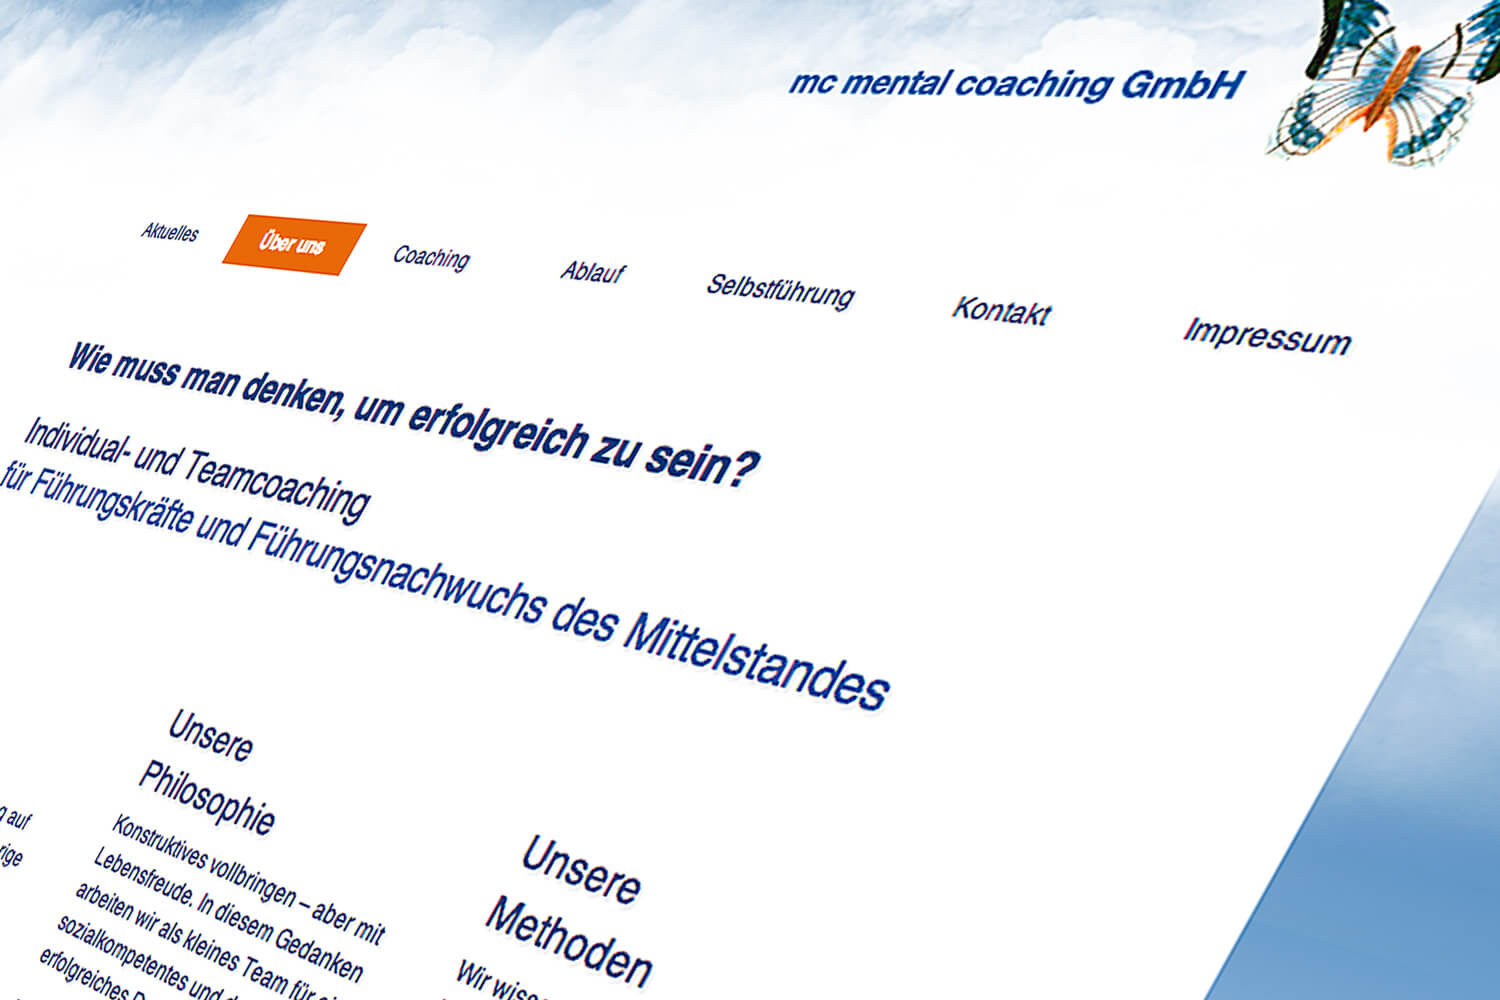 Firmenhomepage Personal Coaching, Worms (Detail)